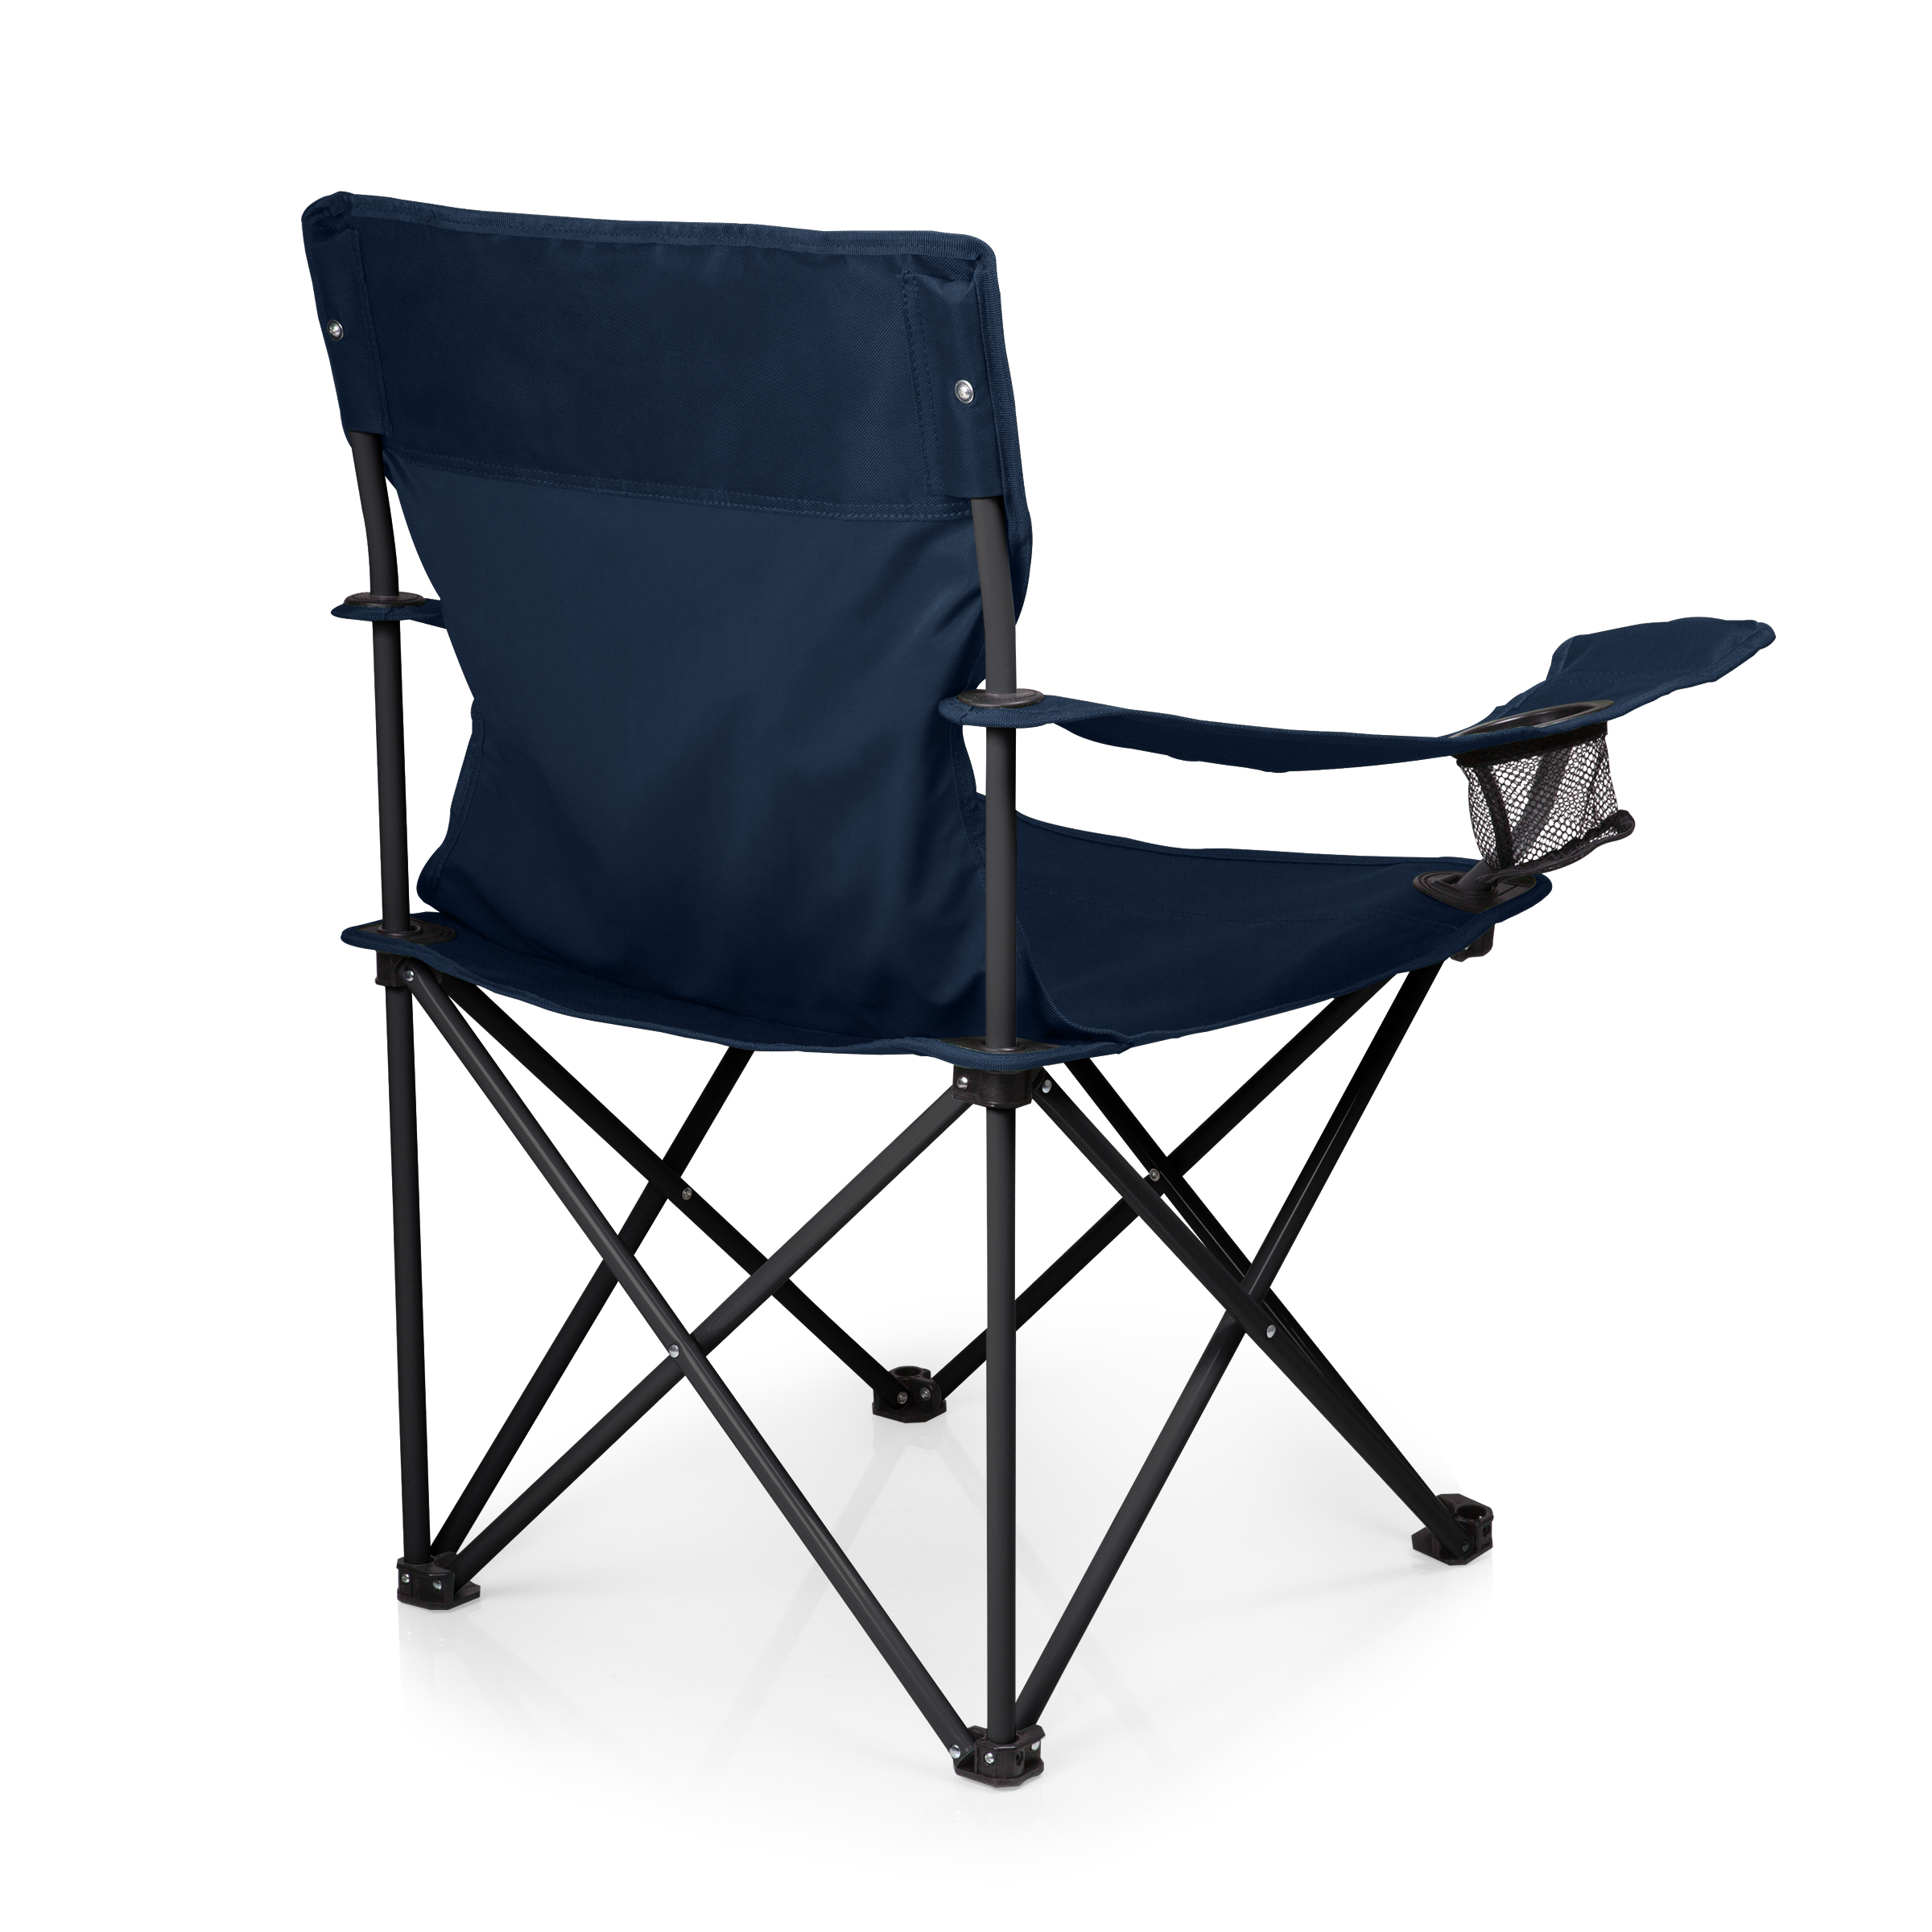 Picnic Time Stadium Chair Picnic Time Stadium Chair Picnic Time Ventura Folding